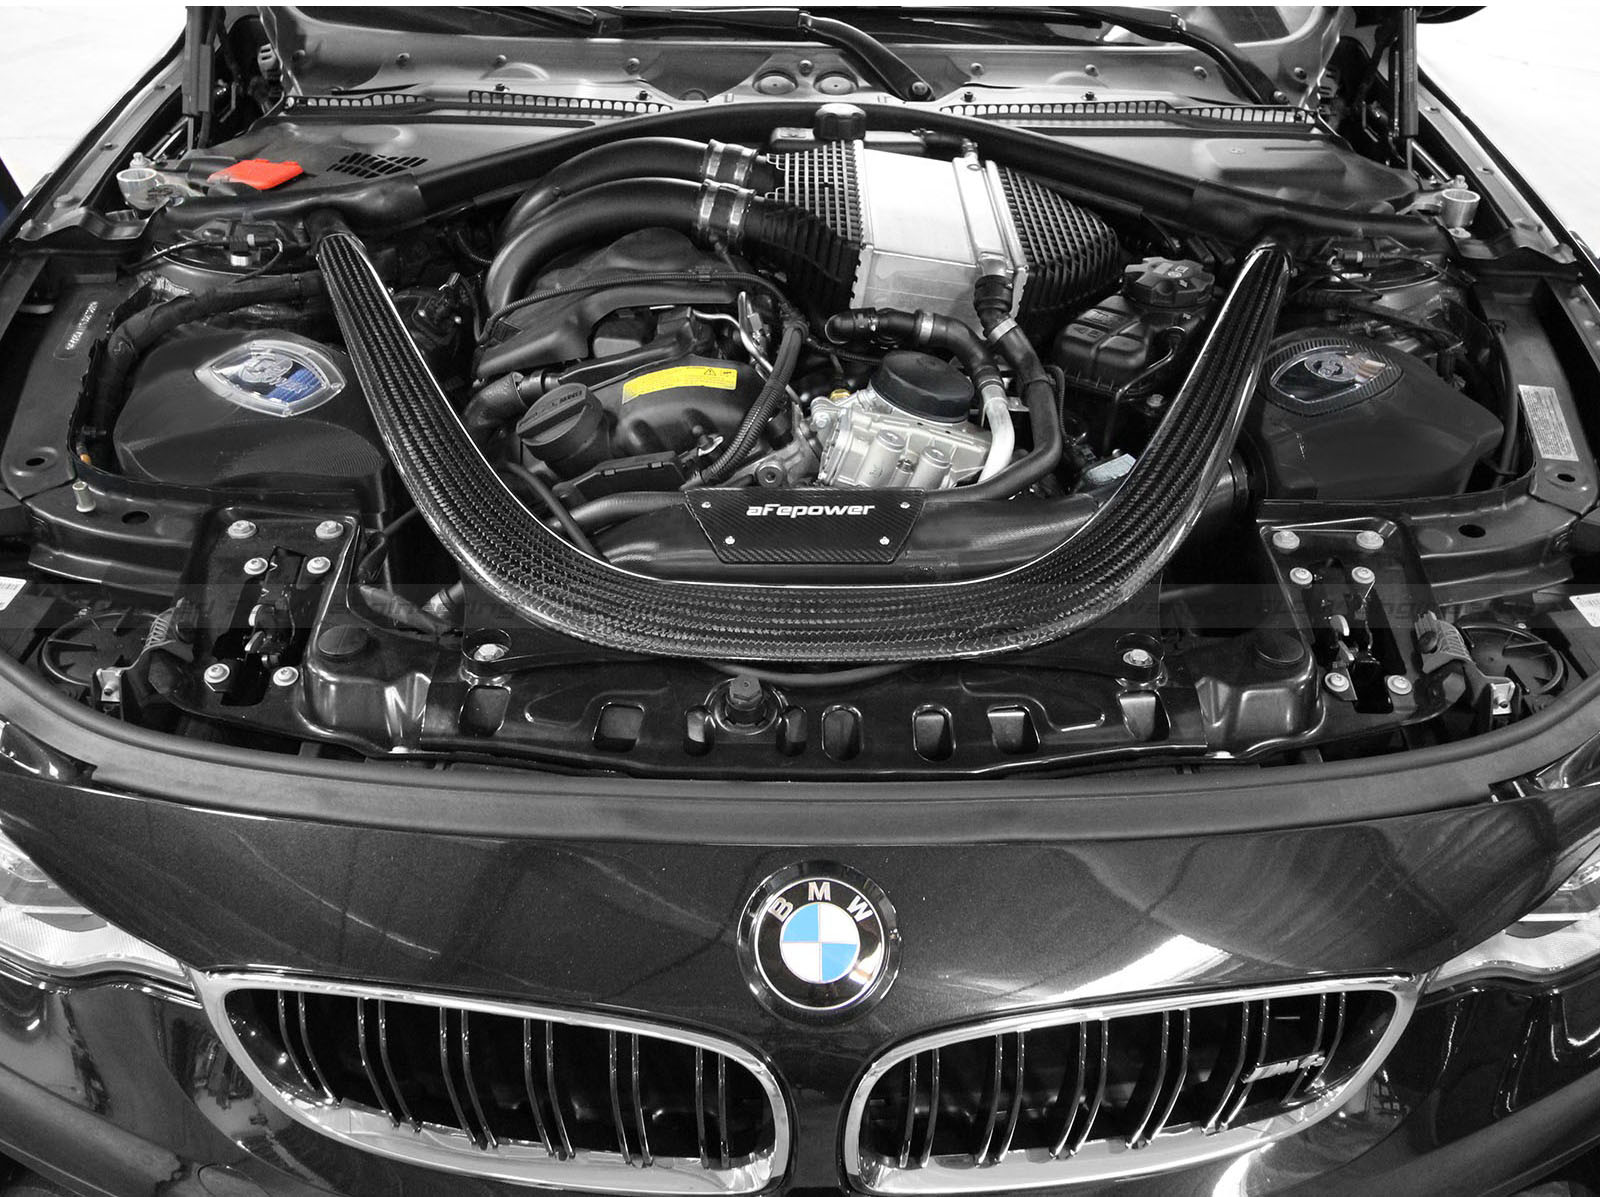 aFe Power 2014+ BMW M3 M4 F80 F82 Momentum Intake for BMW S55 Turbo I6 Engine at ModBargains.com 1